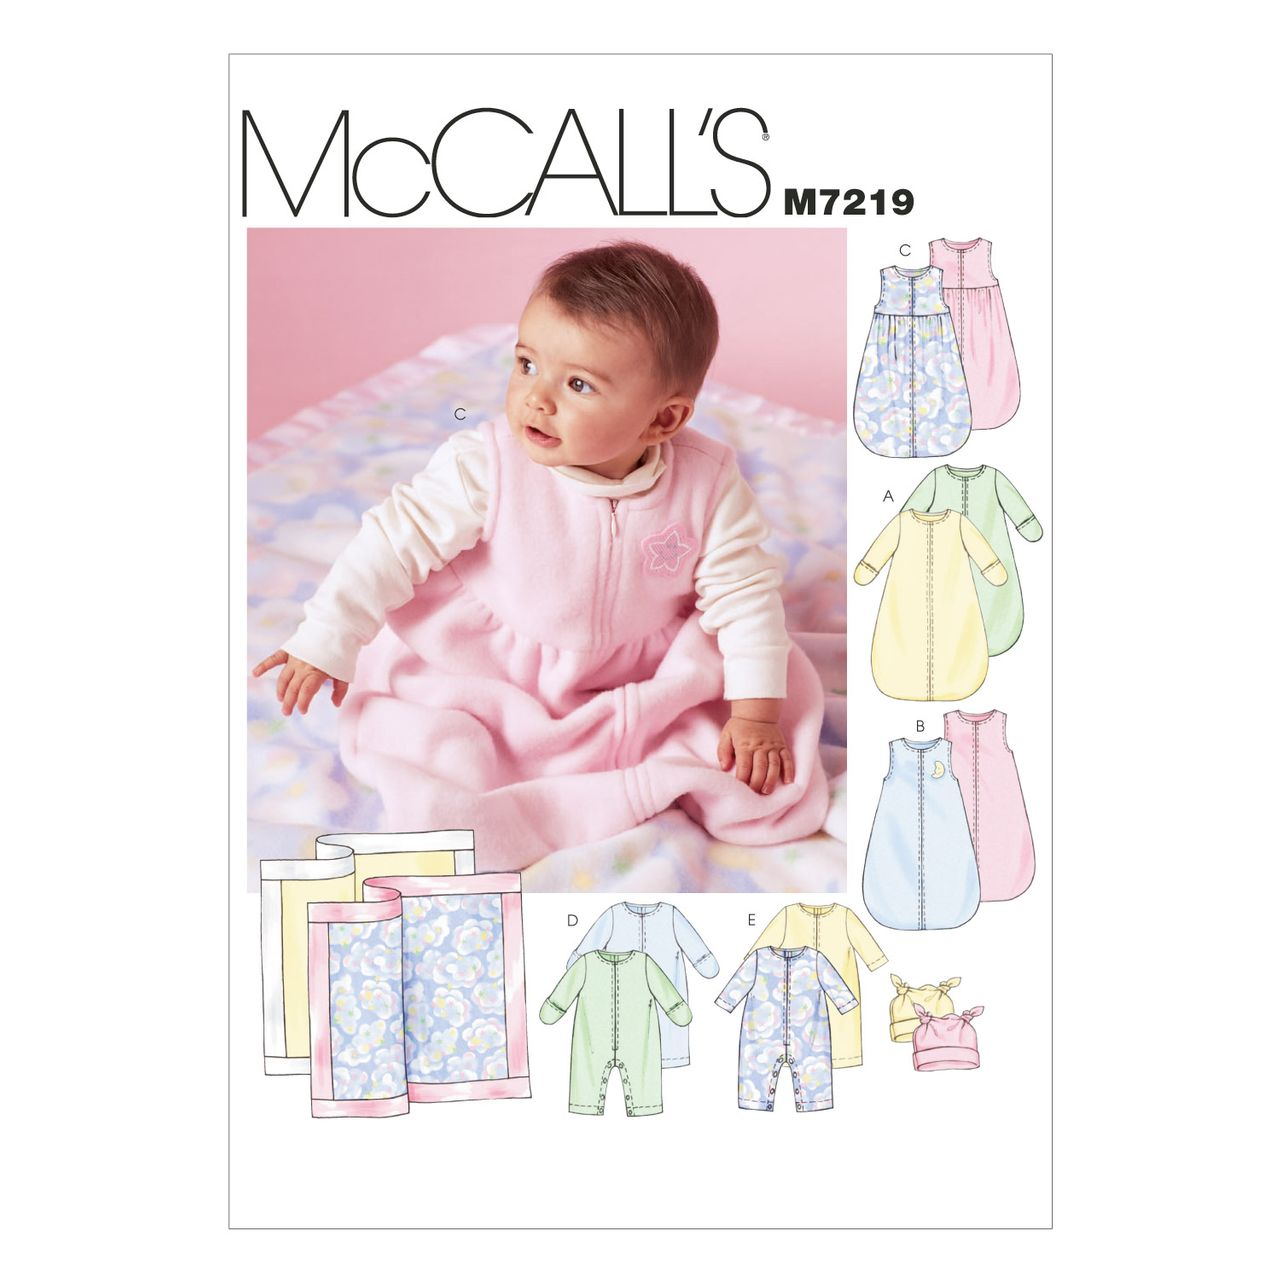 7a24f435255 McCall´s Schnittmuster - 7219 - Kinder - Strampler & Baby-Accessoires